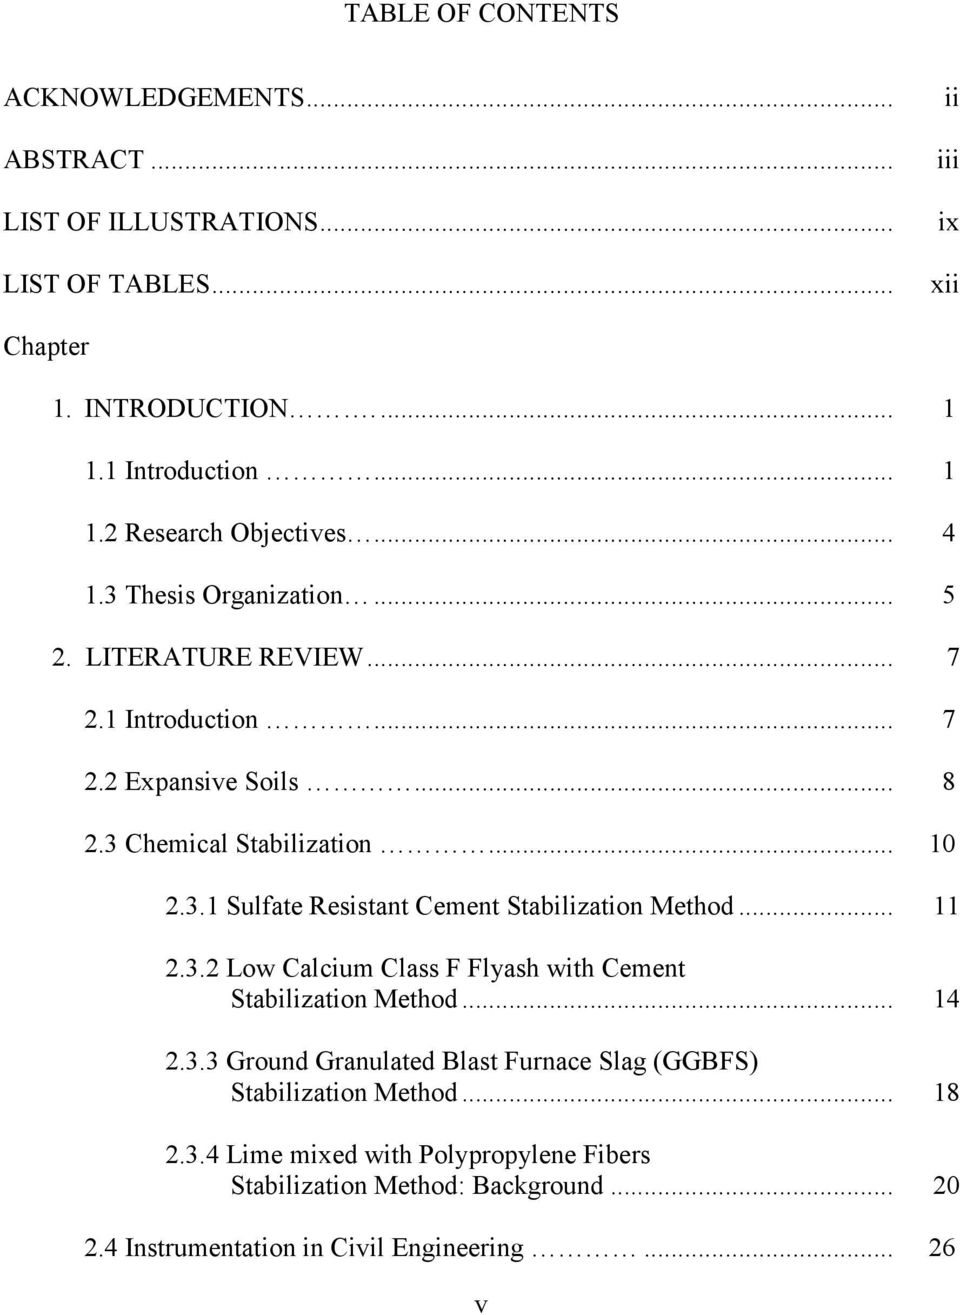 .. 11 2.3.2 Low Calcium Class F Flyash with Cement Stabilization Method... 14 2.3.3 Ground Granulated Blast Furnace Slag (GGBFS) Stabilization Method... 18 2.3.4 Lime mixed with Polypropylene Fibers Stabilization Method: Background.